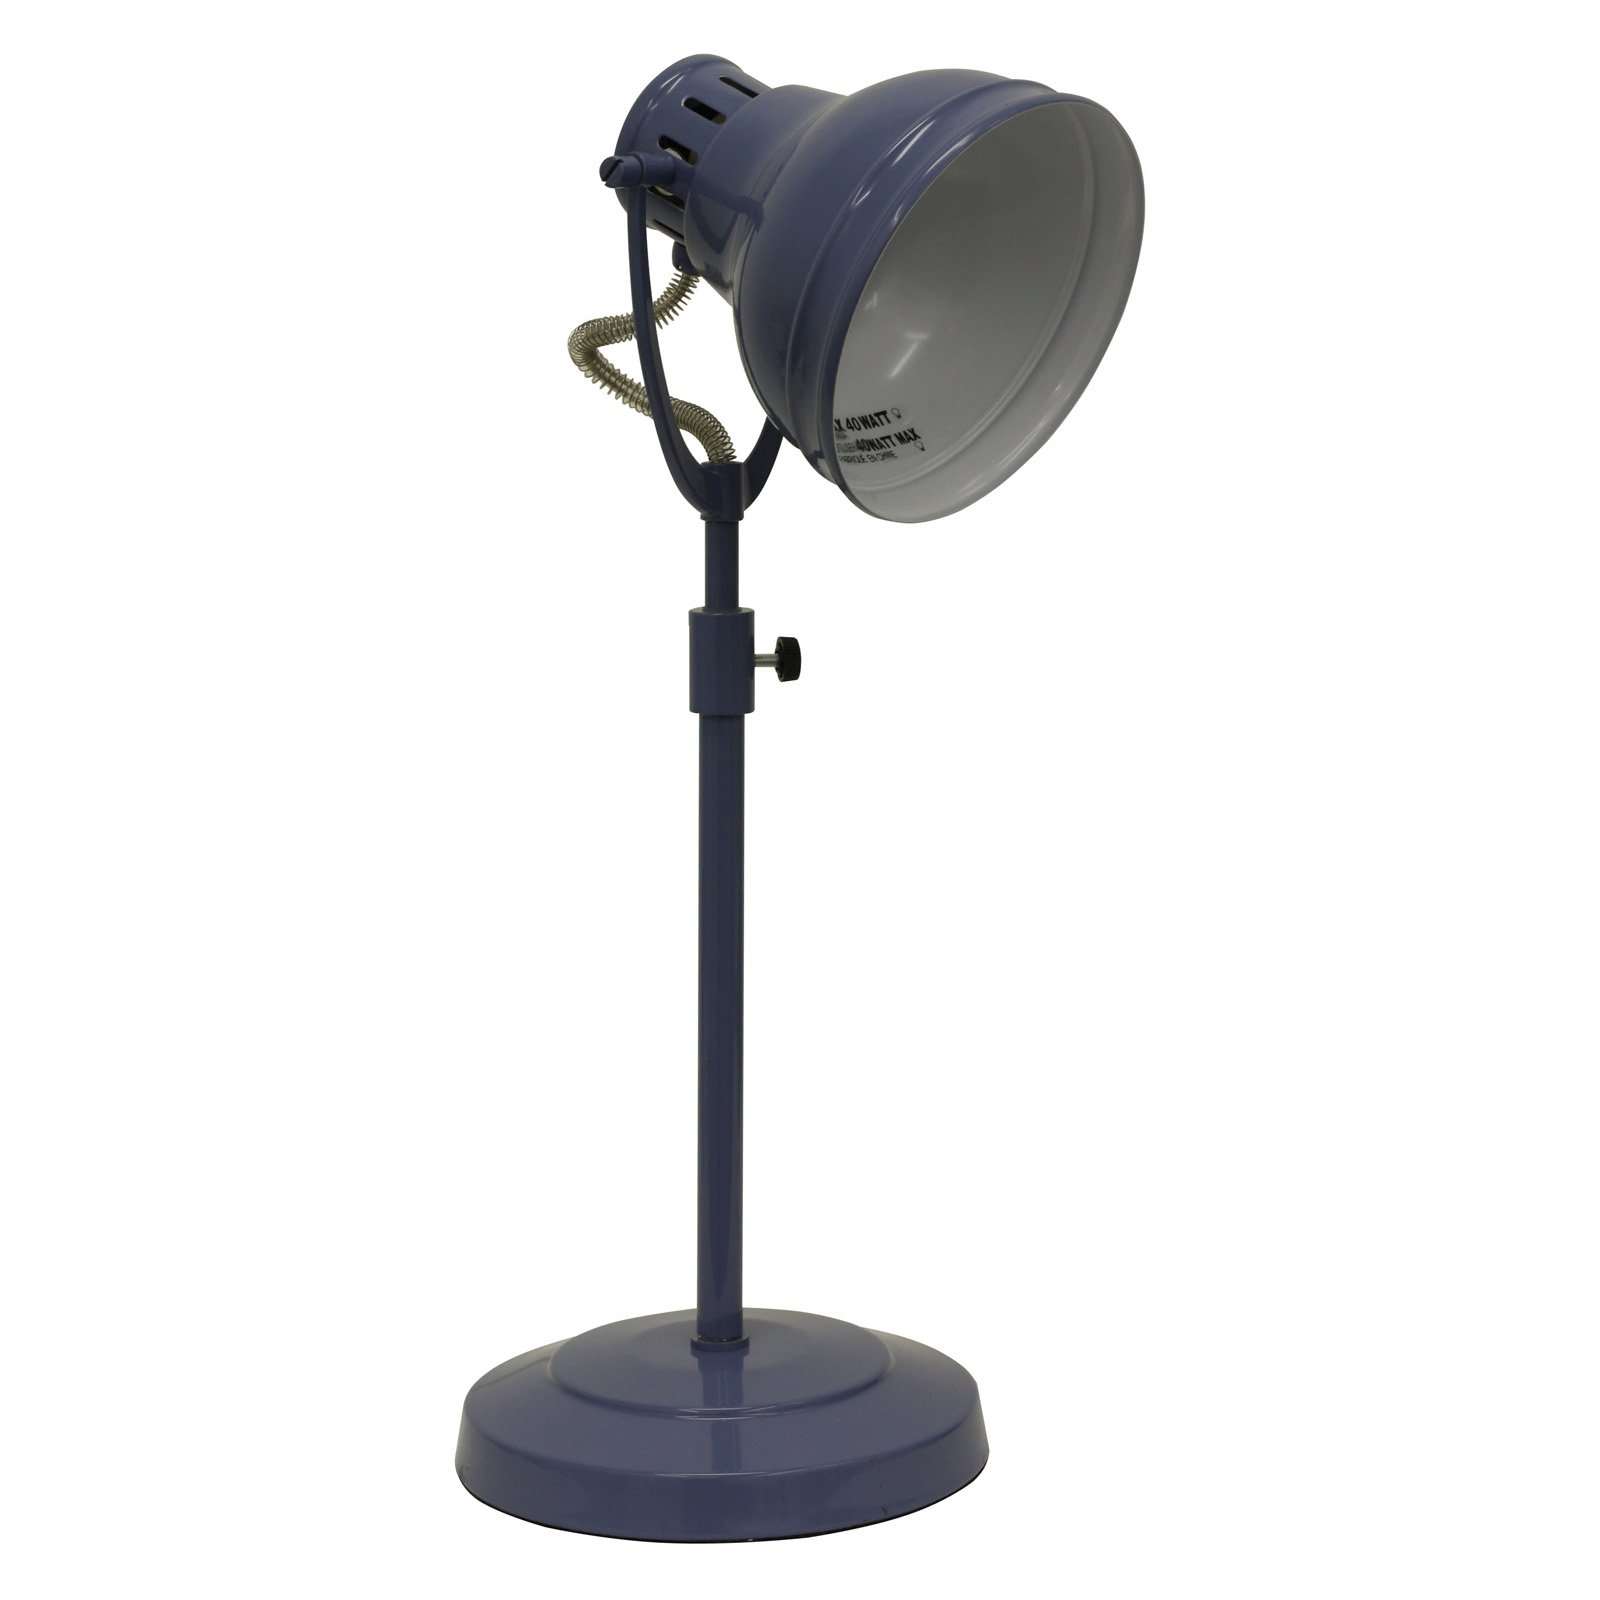 Desk Task Table Lamp with Adjustable Shade by JIMCO LAMP CO.